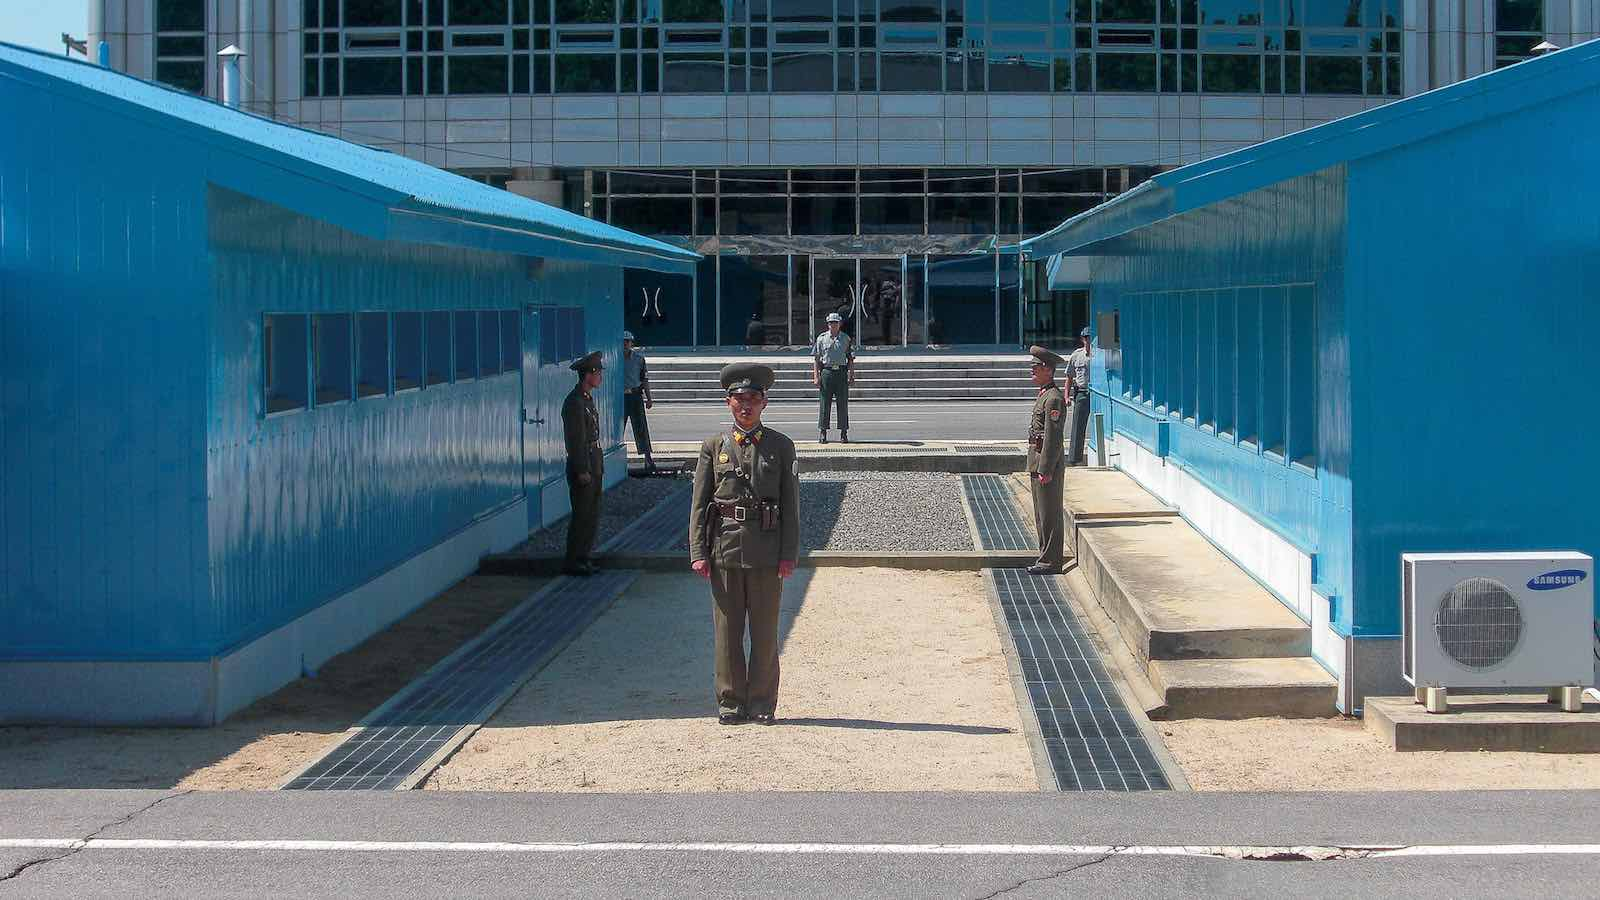 North Korean soldiers stand guard in the DMZ. (Photo: Brodie Karel/Flickr)